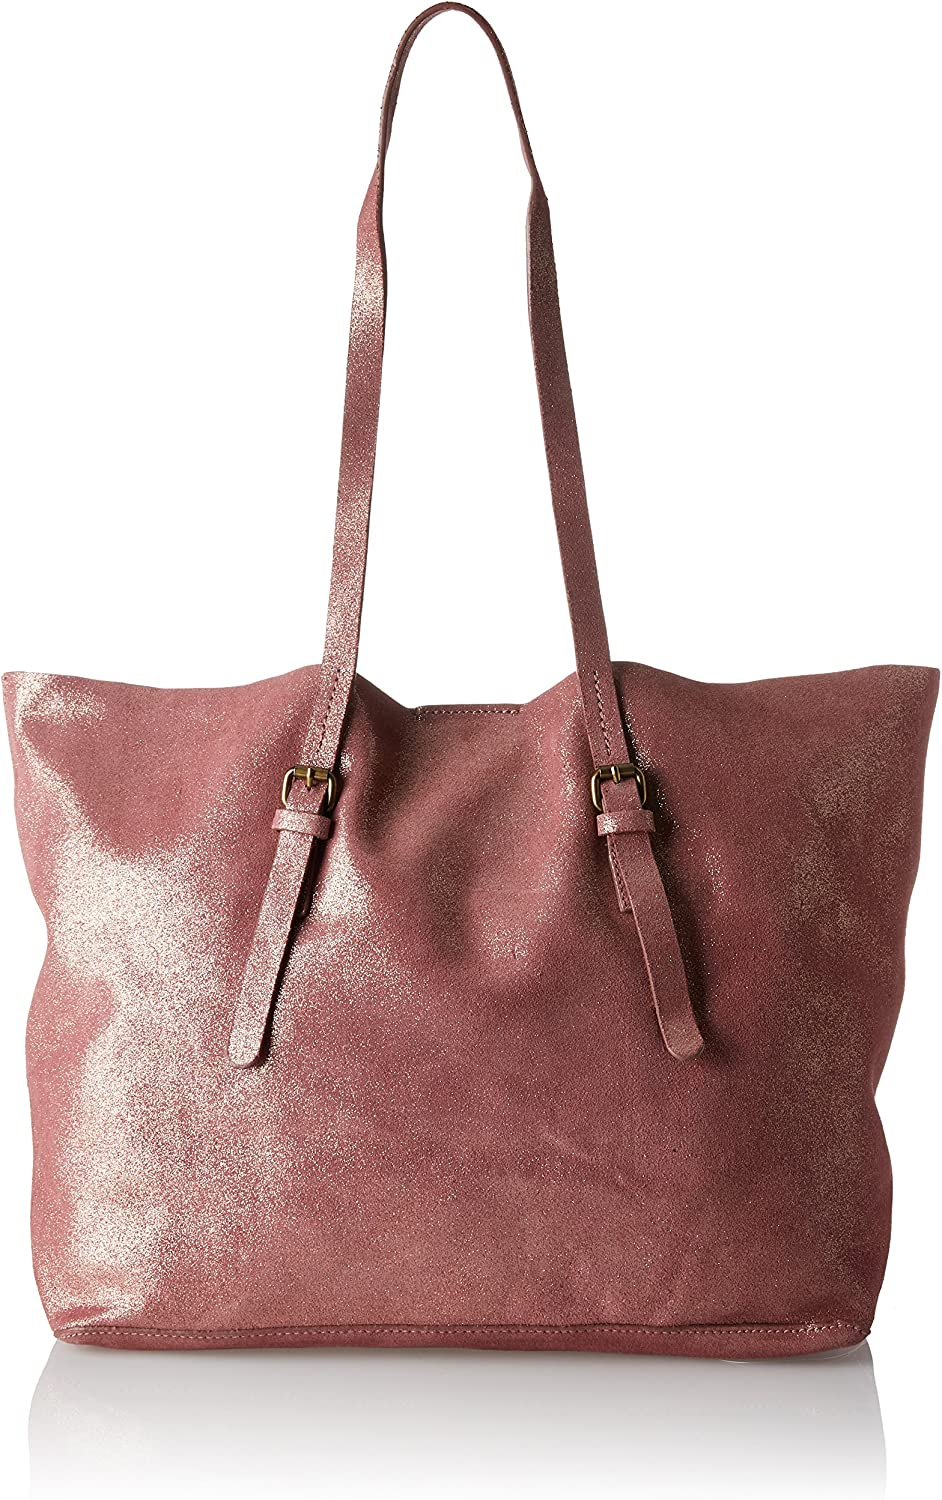 Esprit Women's Women's Red Suede Shopper With Glitter 100% Leather